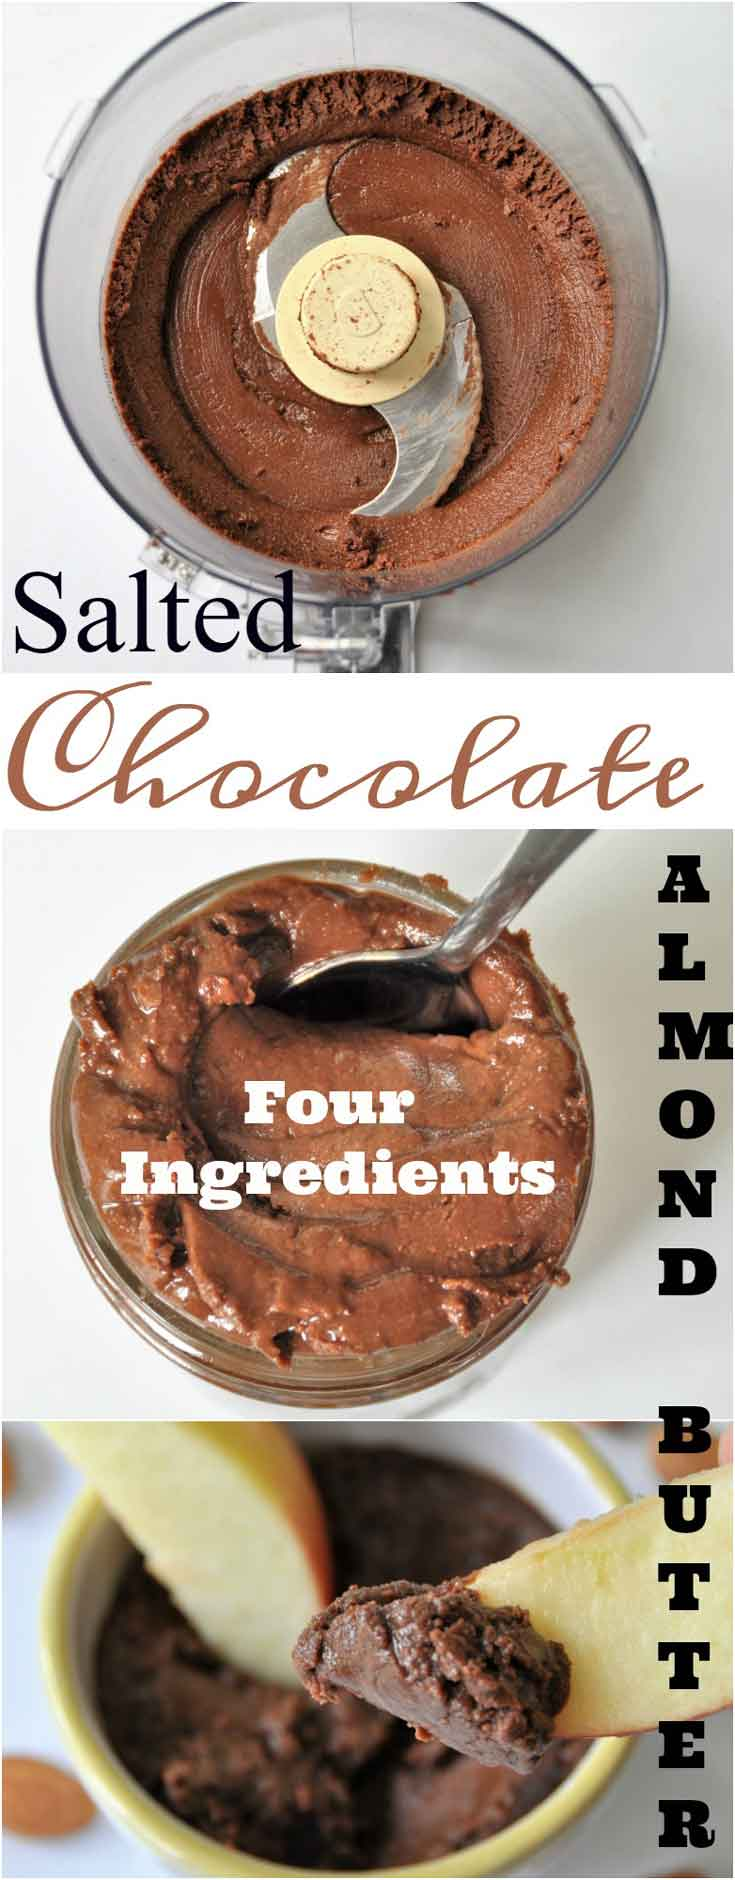 Homemade Salted Chocolate Roasted Almond Butter! Only four ingredients in this easy and delicious recipe! www.veganosity.com